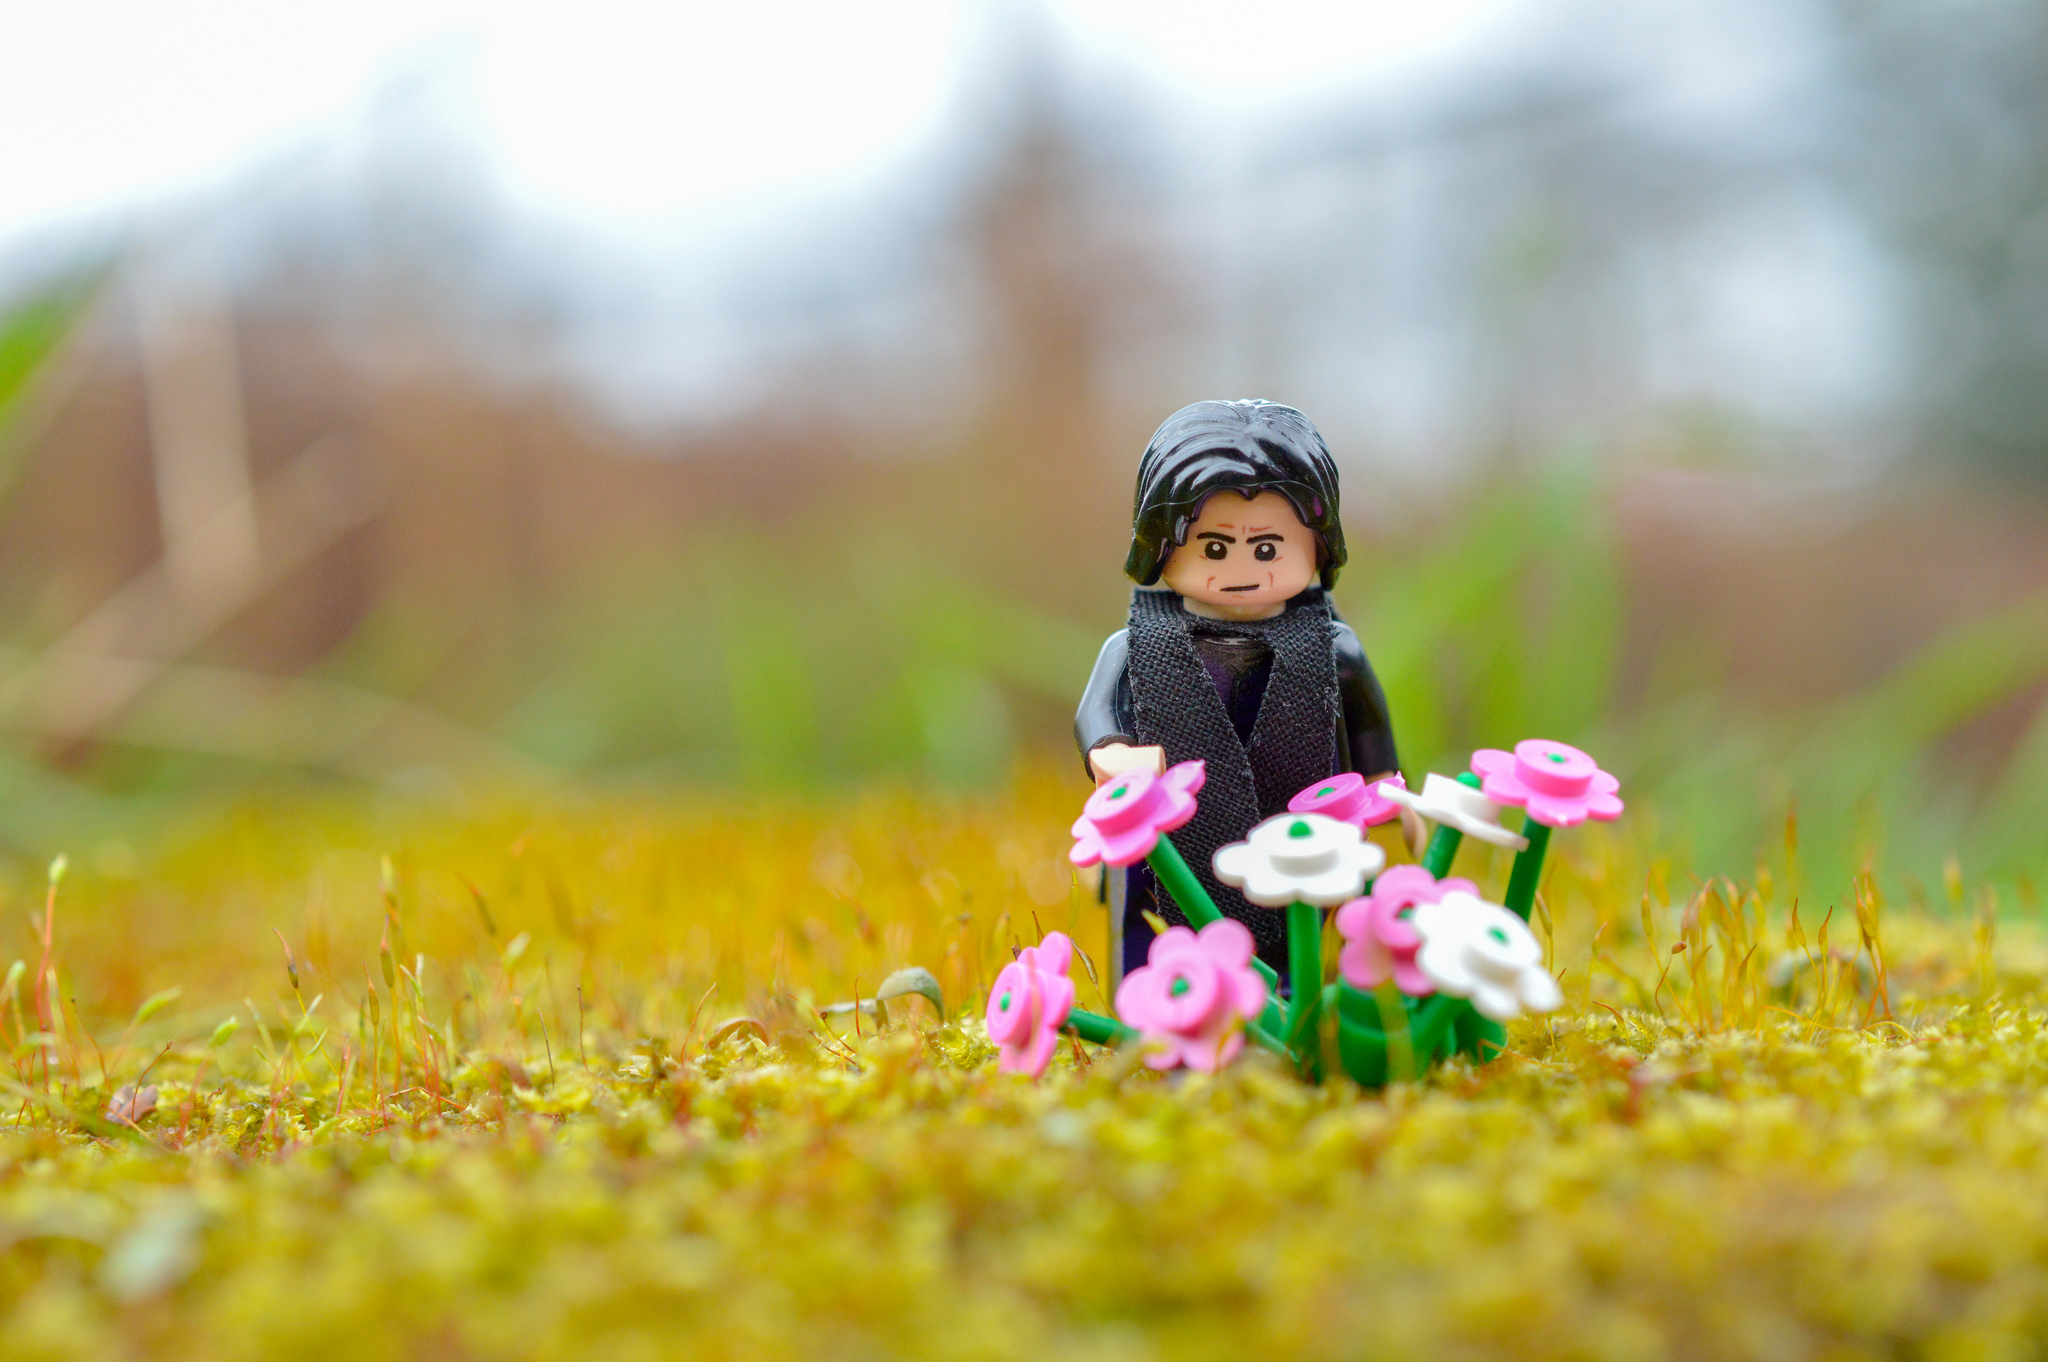 LEGO Harry Potter Severus Snape minifigure and flowers by Lizzi S